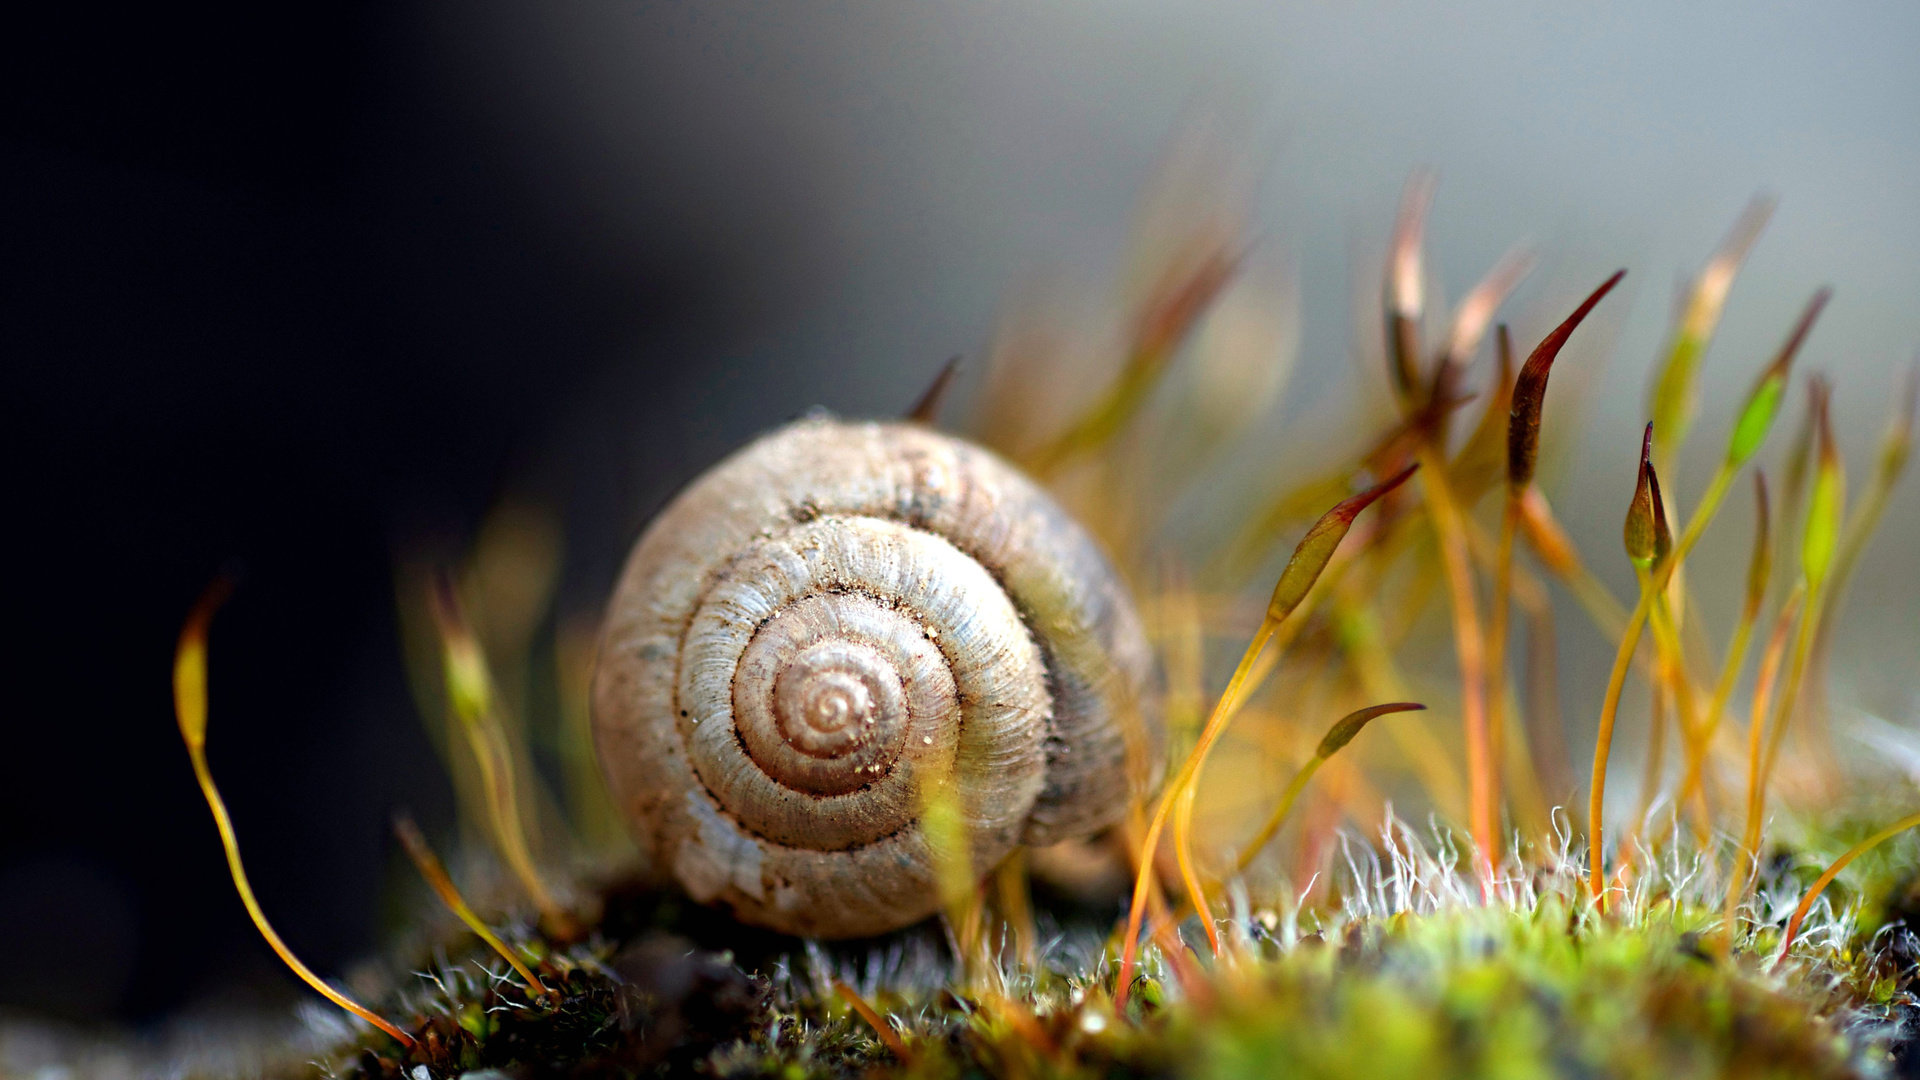 Download 1080p Snail desktop background ID:198834 for free